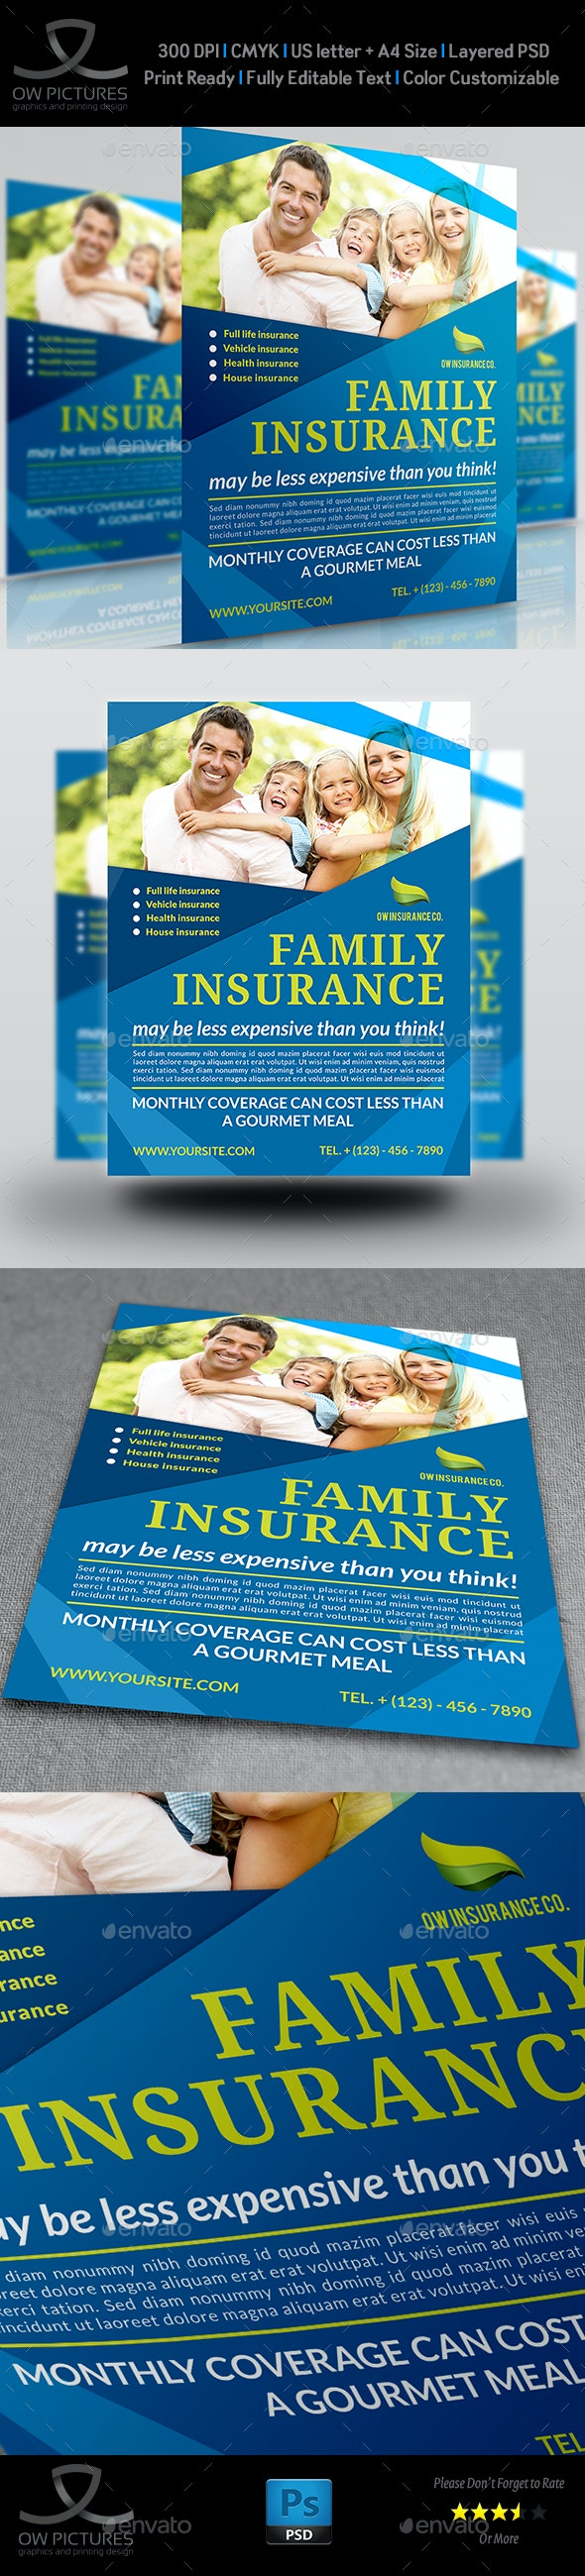 Insurance Flyer Template - Flyers Print Templates